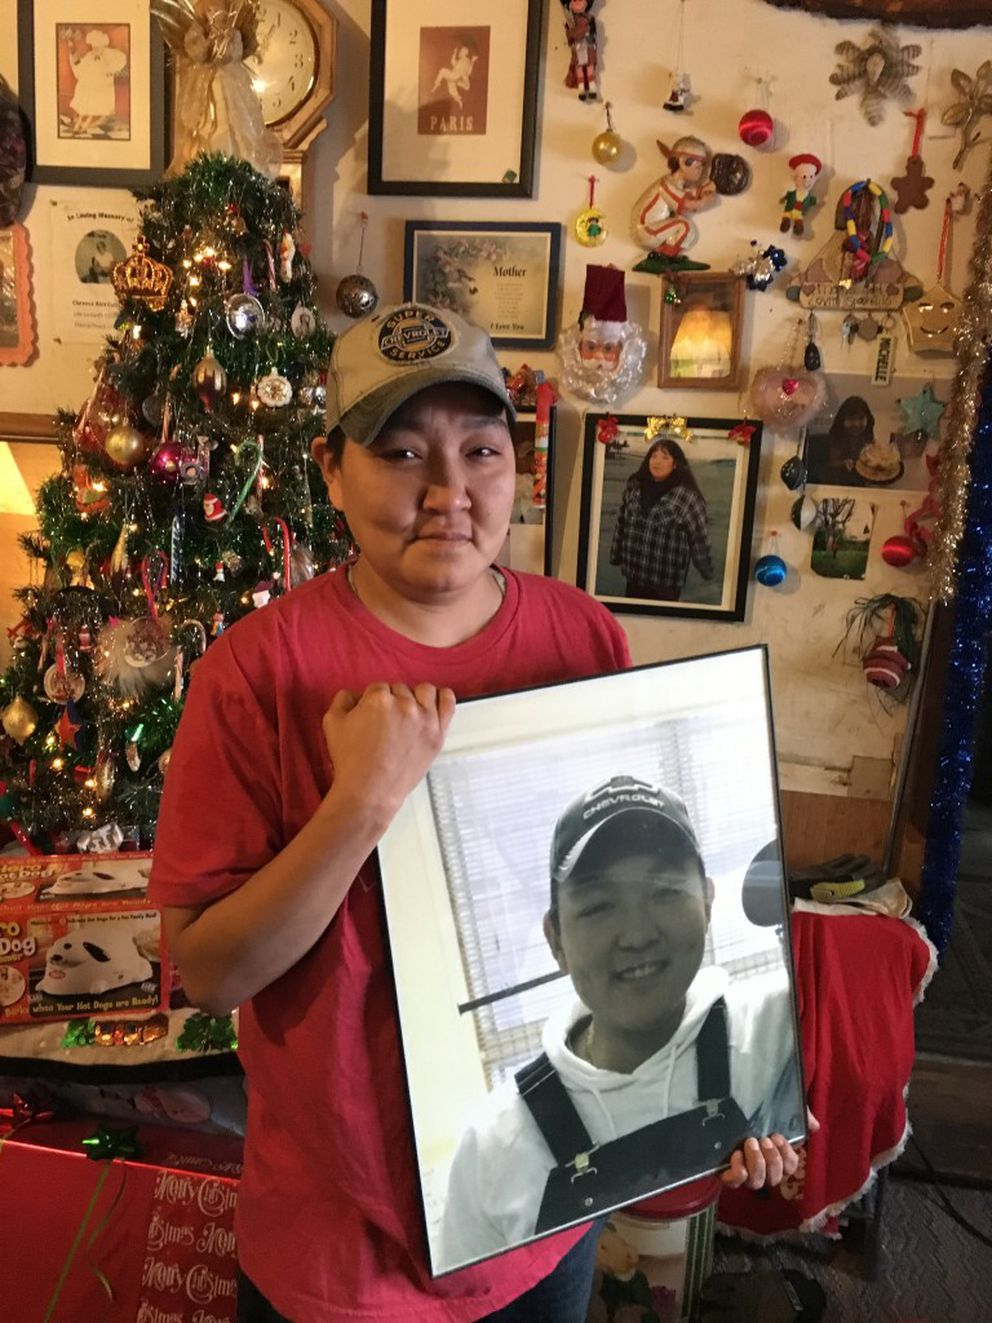 Michelle Woodford holds a portrait of her son Frank Woodford in her home in Caswell Lakes on Jan. 2. Frank died in June after being shot. (Zaz Hollander / Alaska Dispatch News)